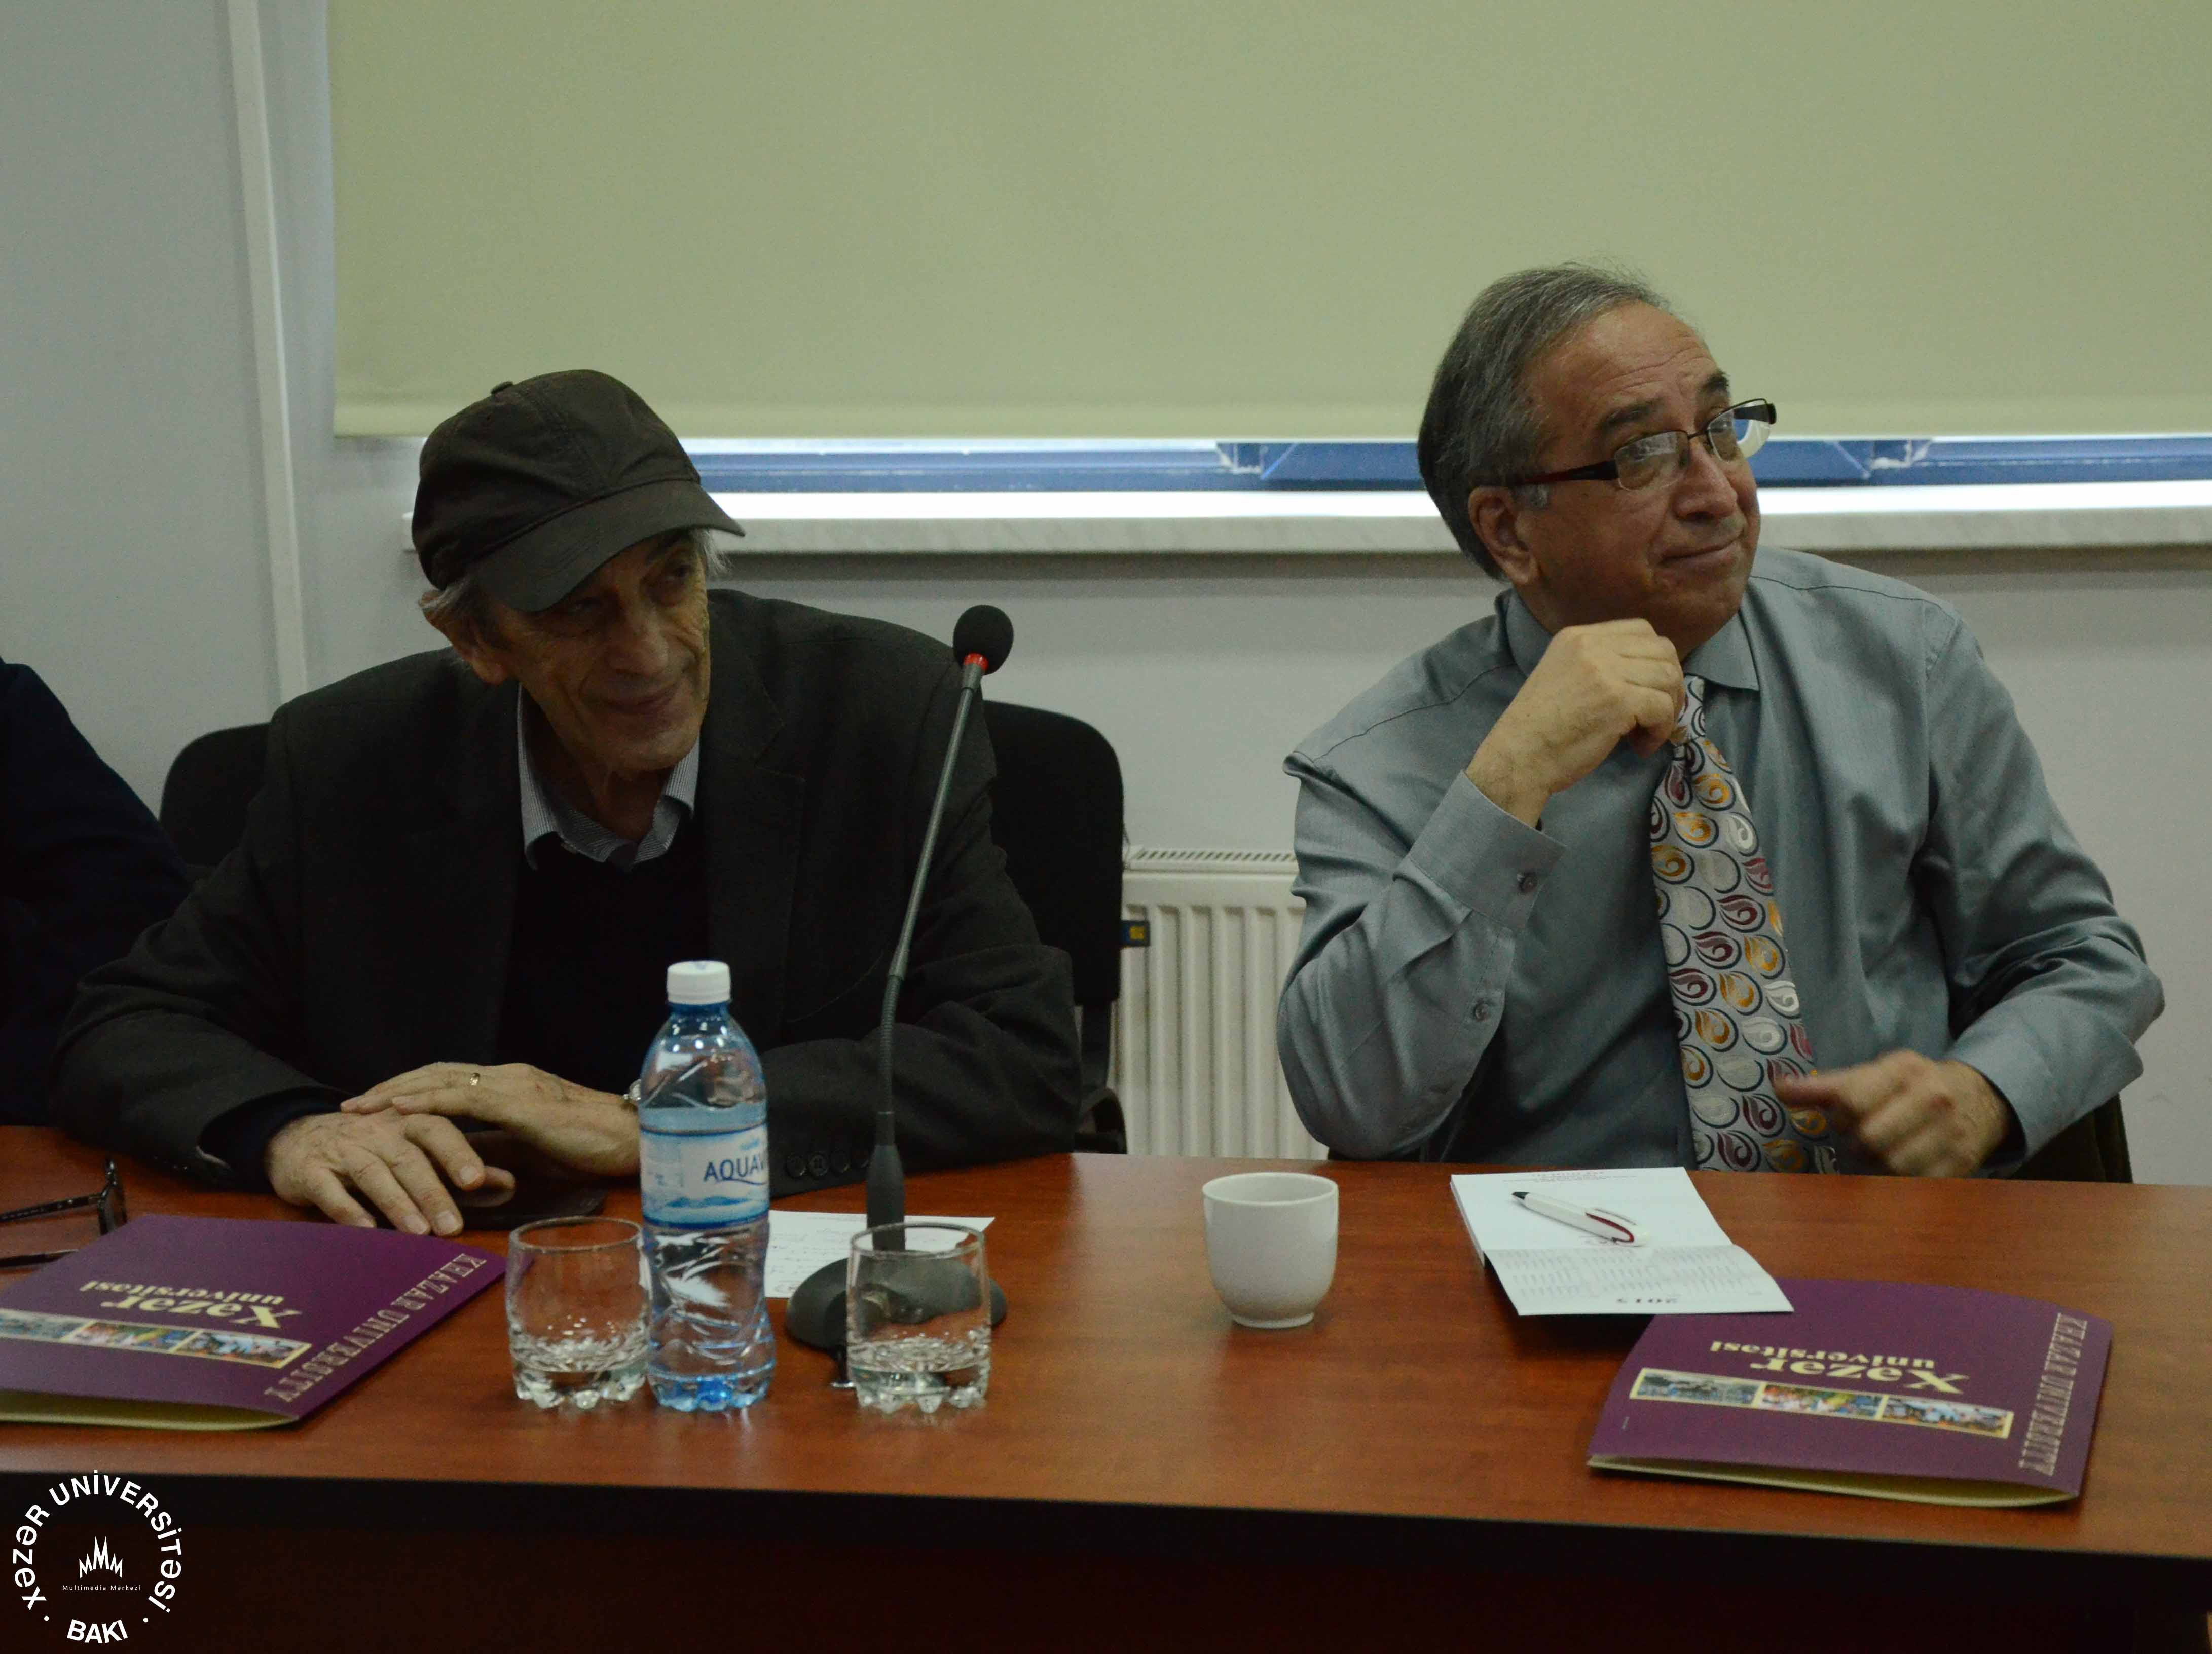 Meeting with Universities and Education Companies from Poland, Iran, and Iraq